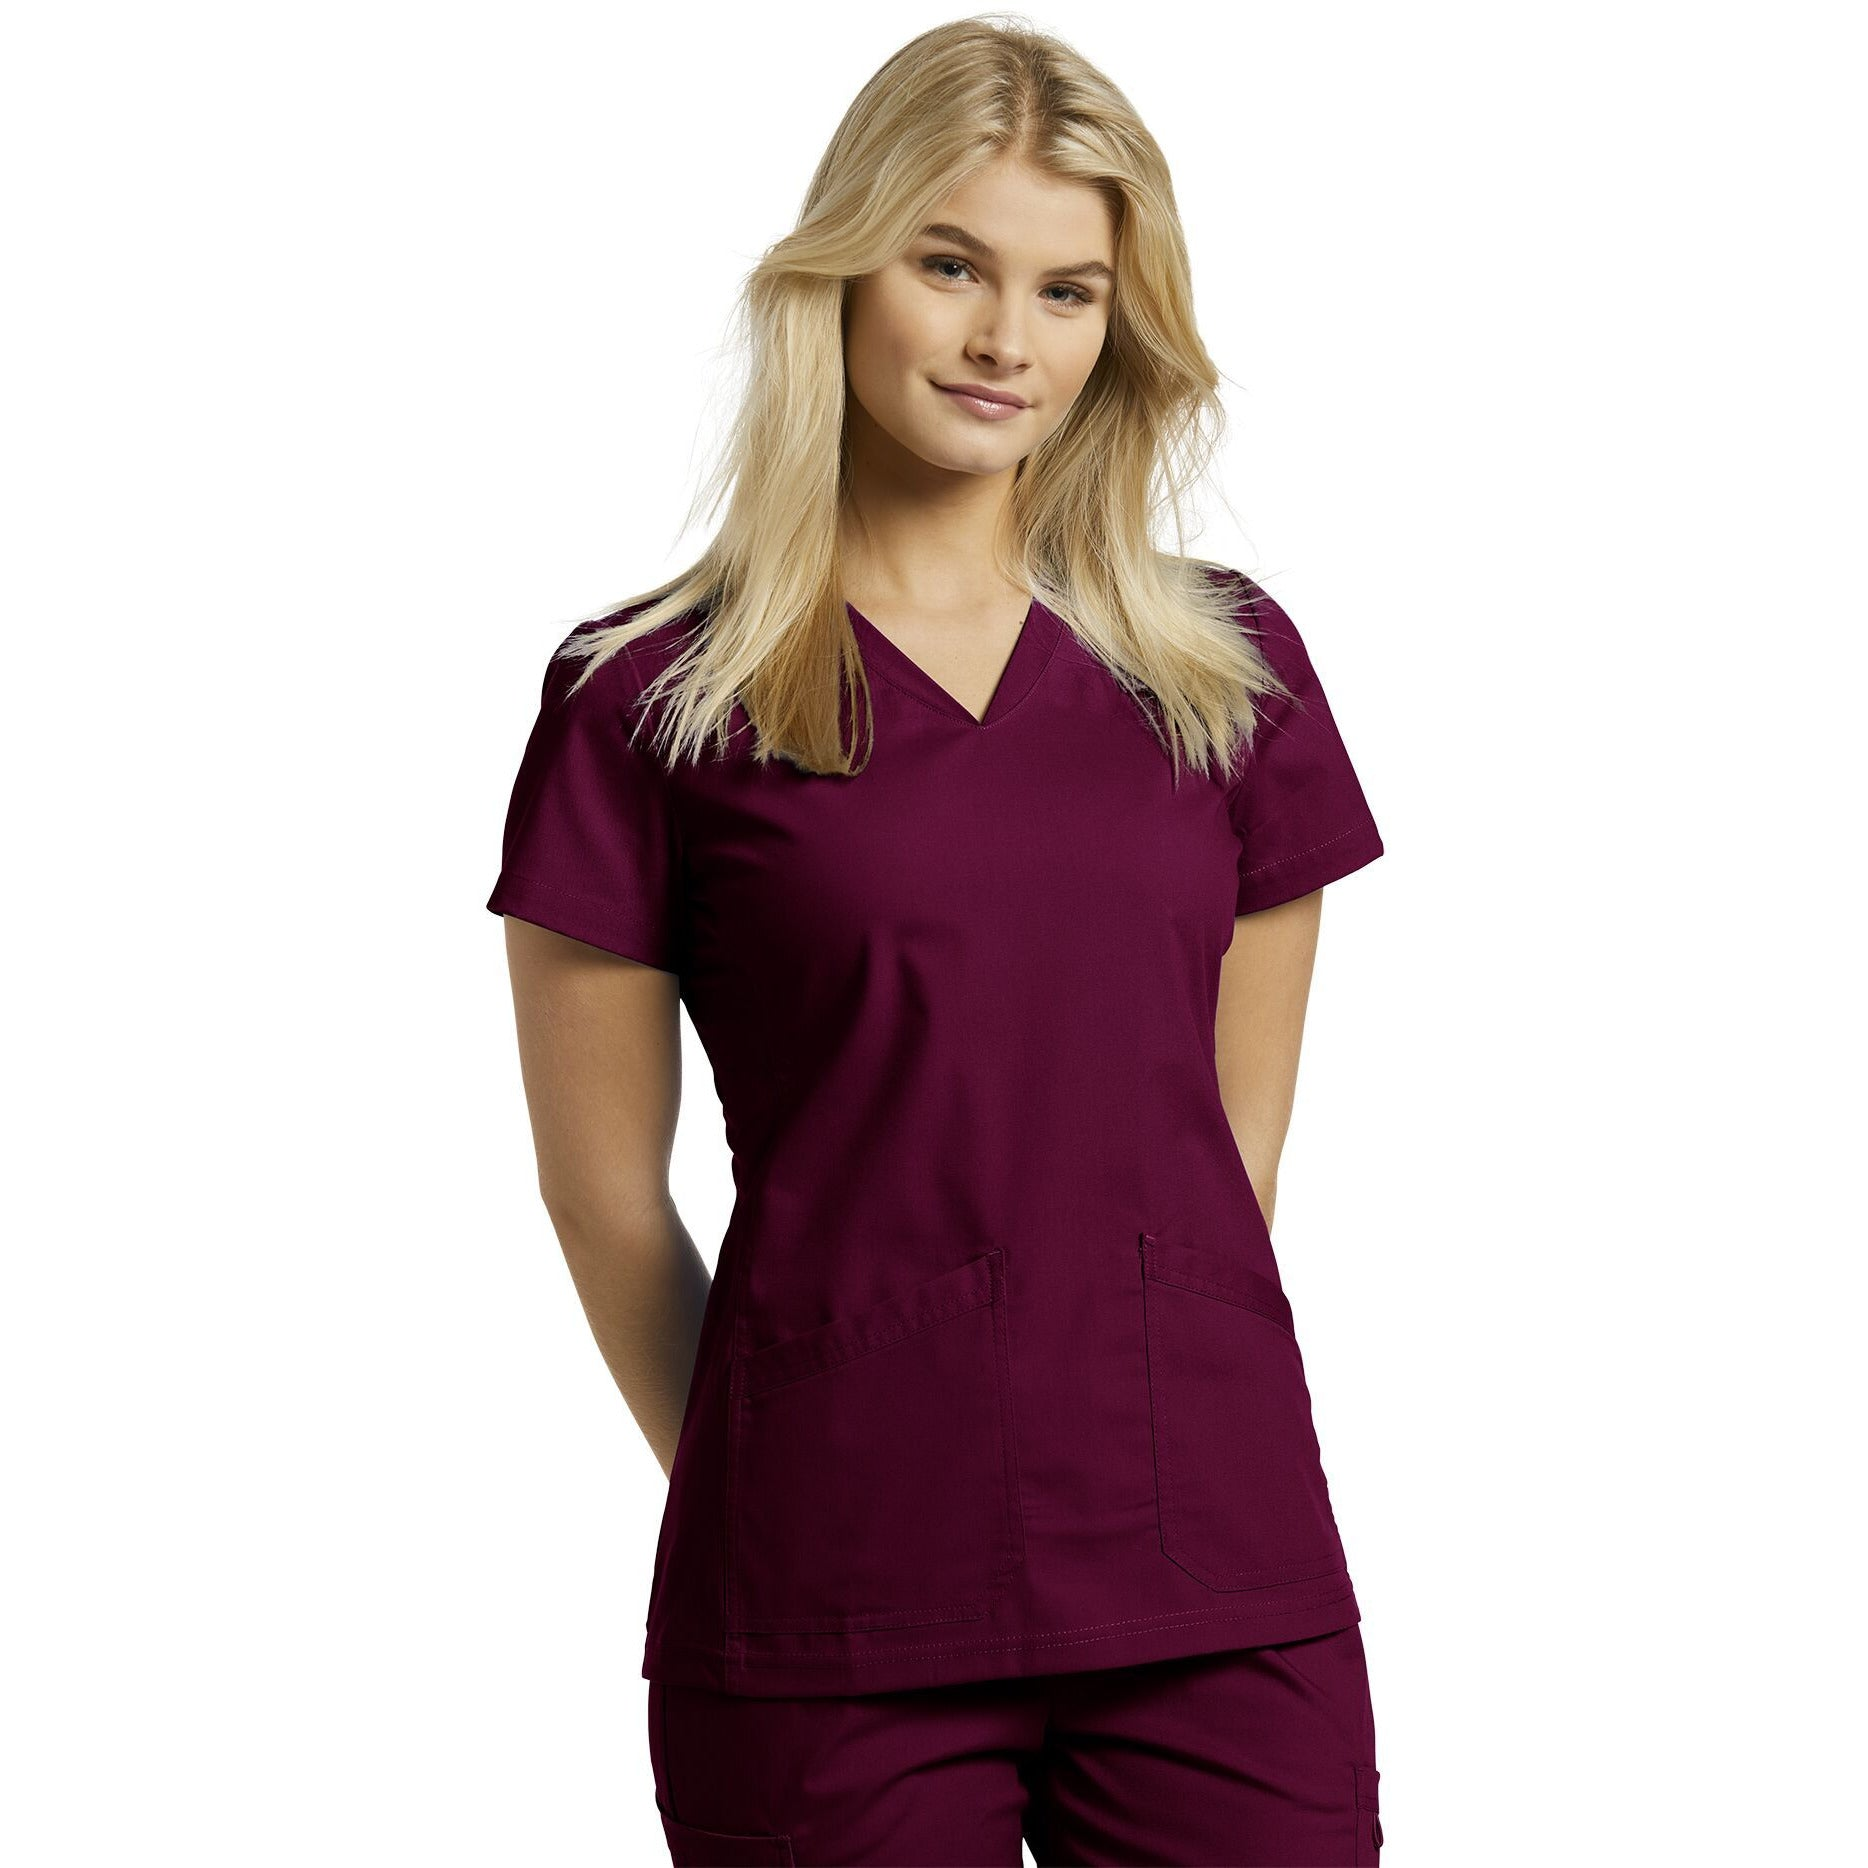 644 White Cross V-Neck Scrub Top